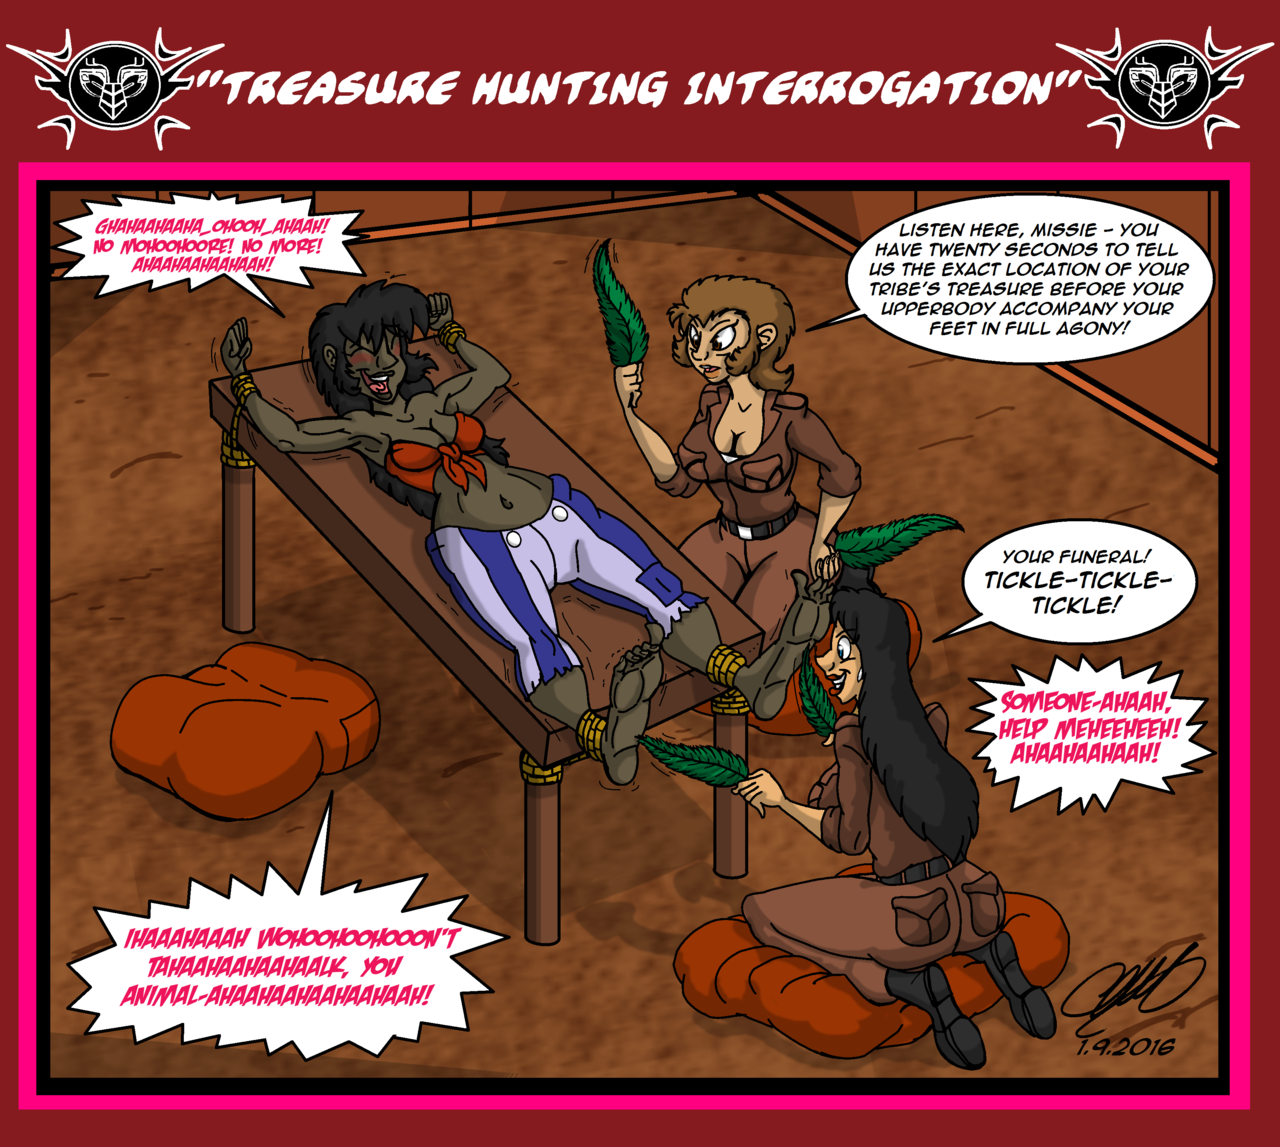 69treasure hunting interrogation by theciemgecorner d9xf2x0